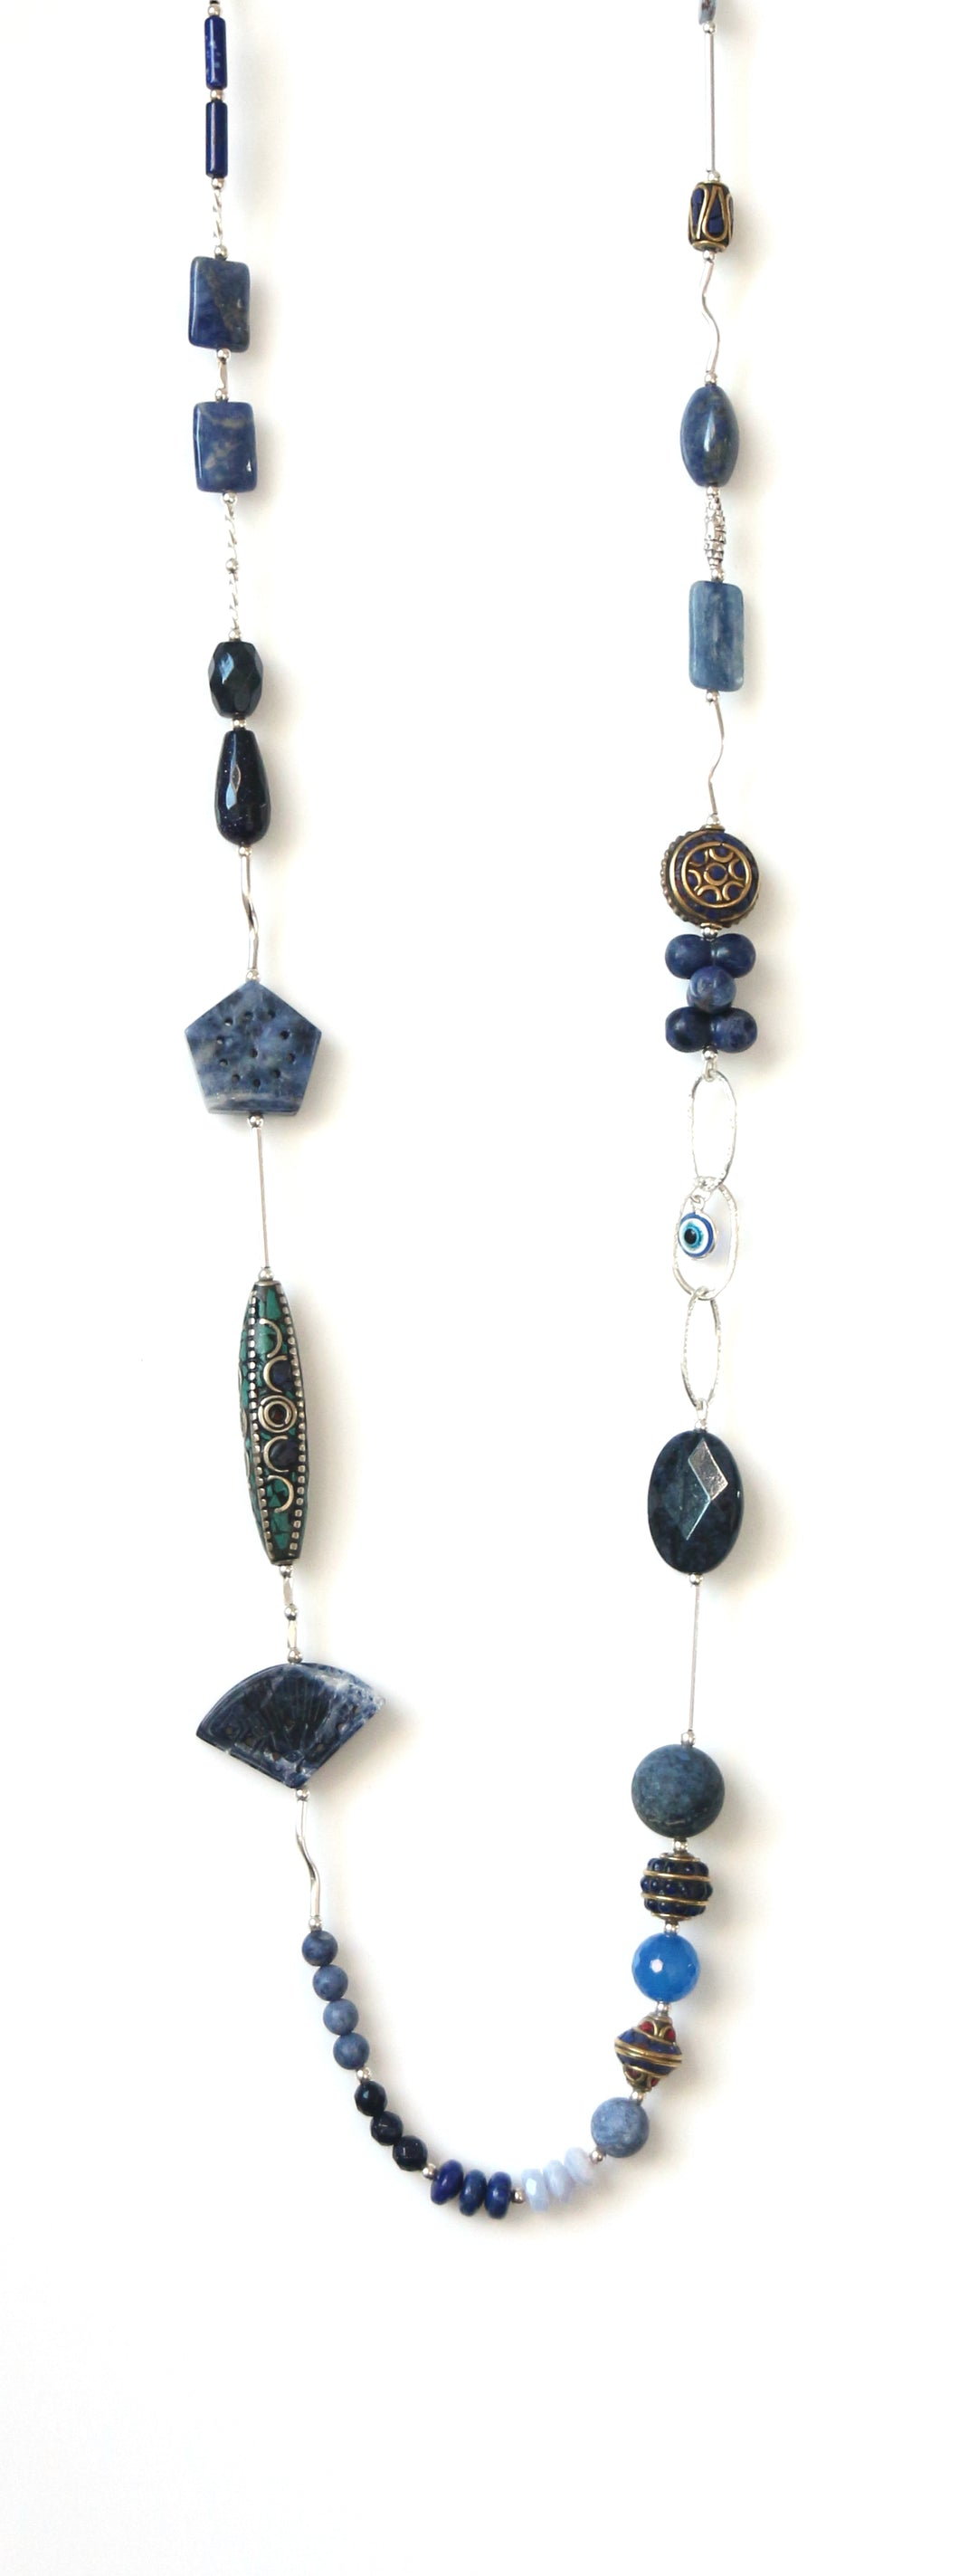 Australian Handmade Blue Necklace with Nepalese Beads Sodalite Dumortierite Lapis Lazuli and Sterling Silver